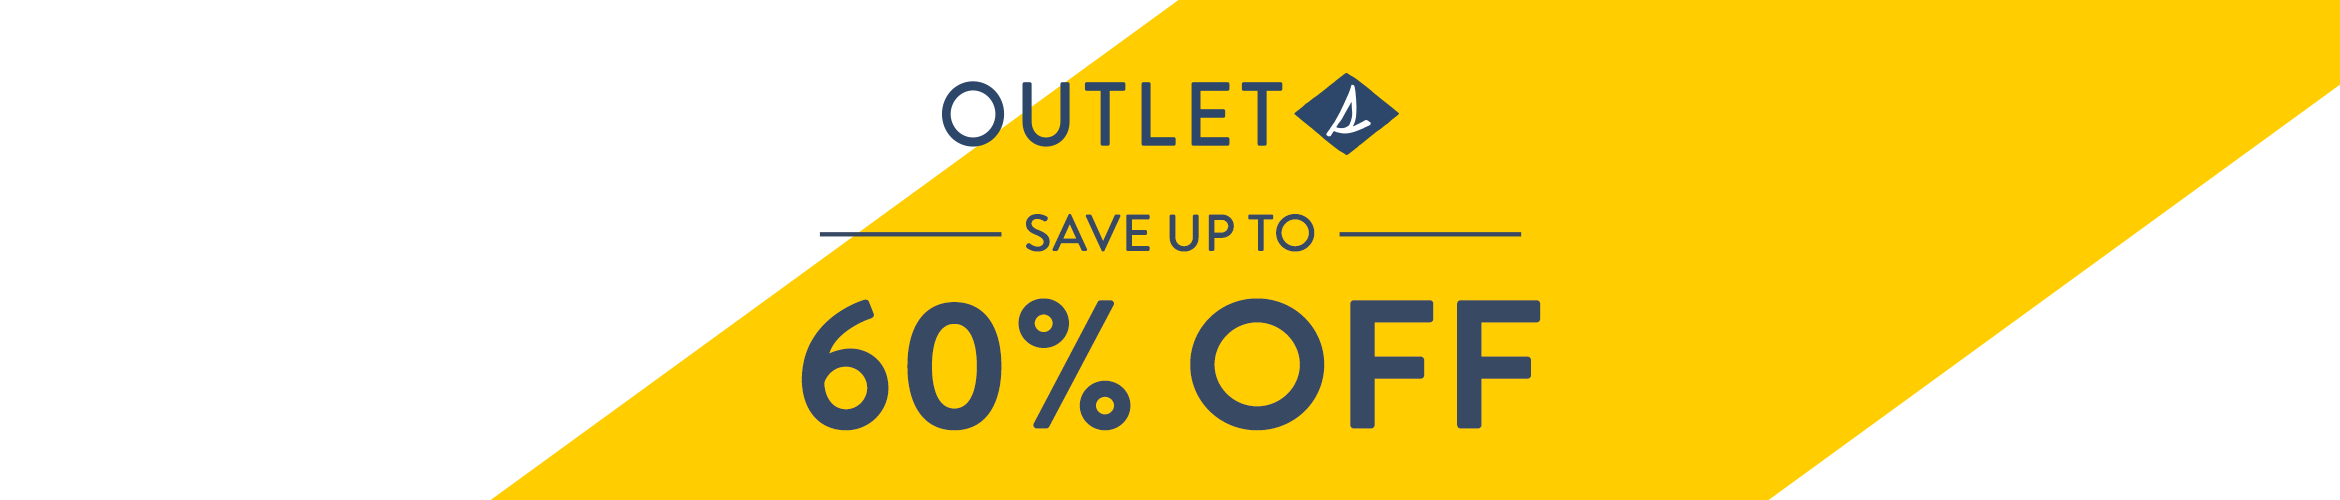 Sperry Outlet. Save up to 60% off.